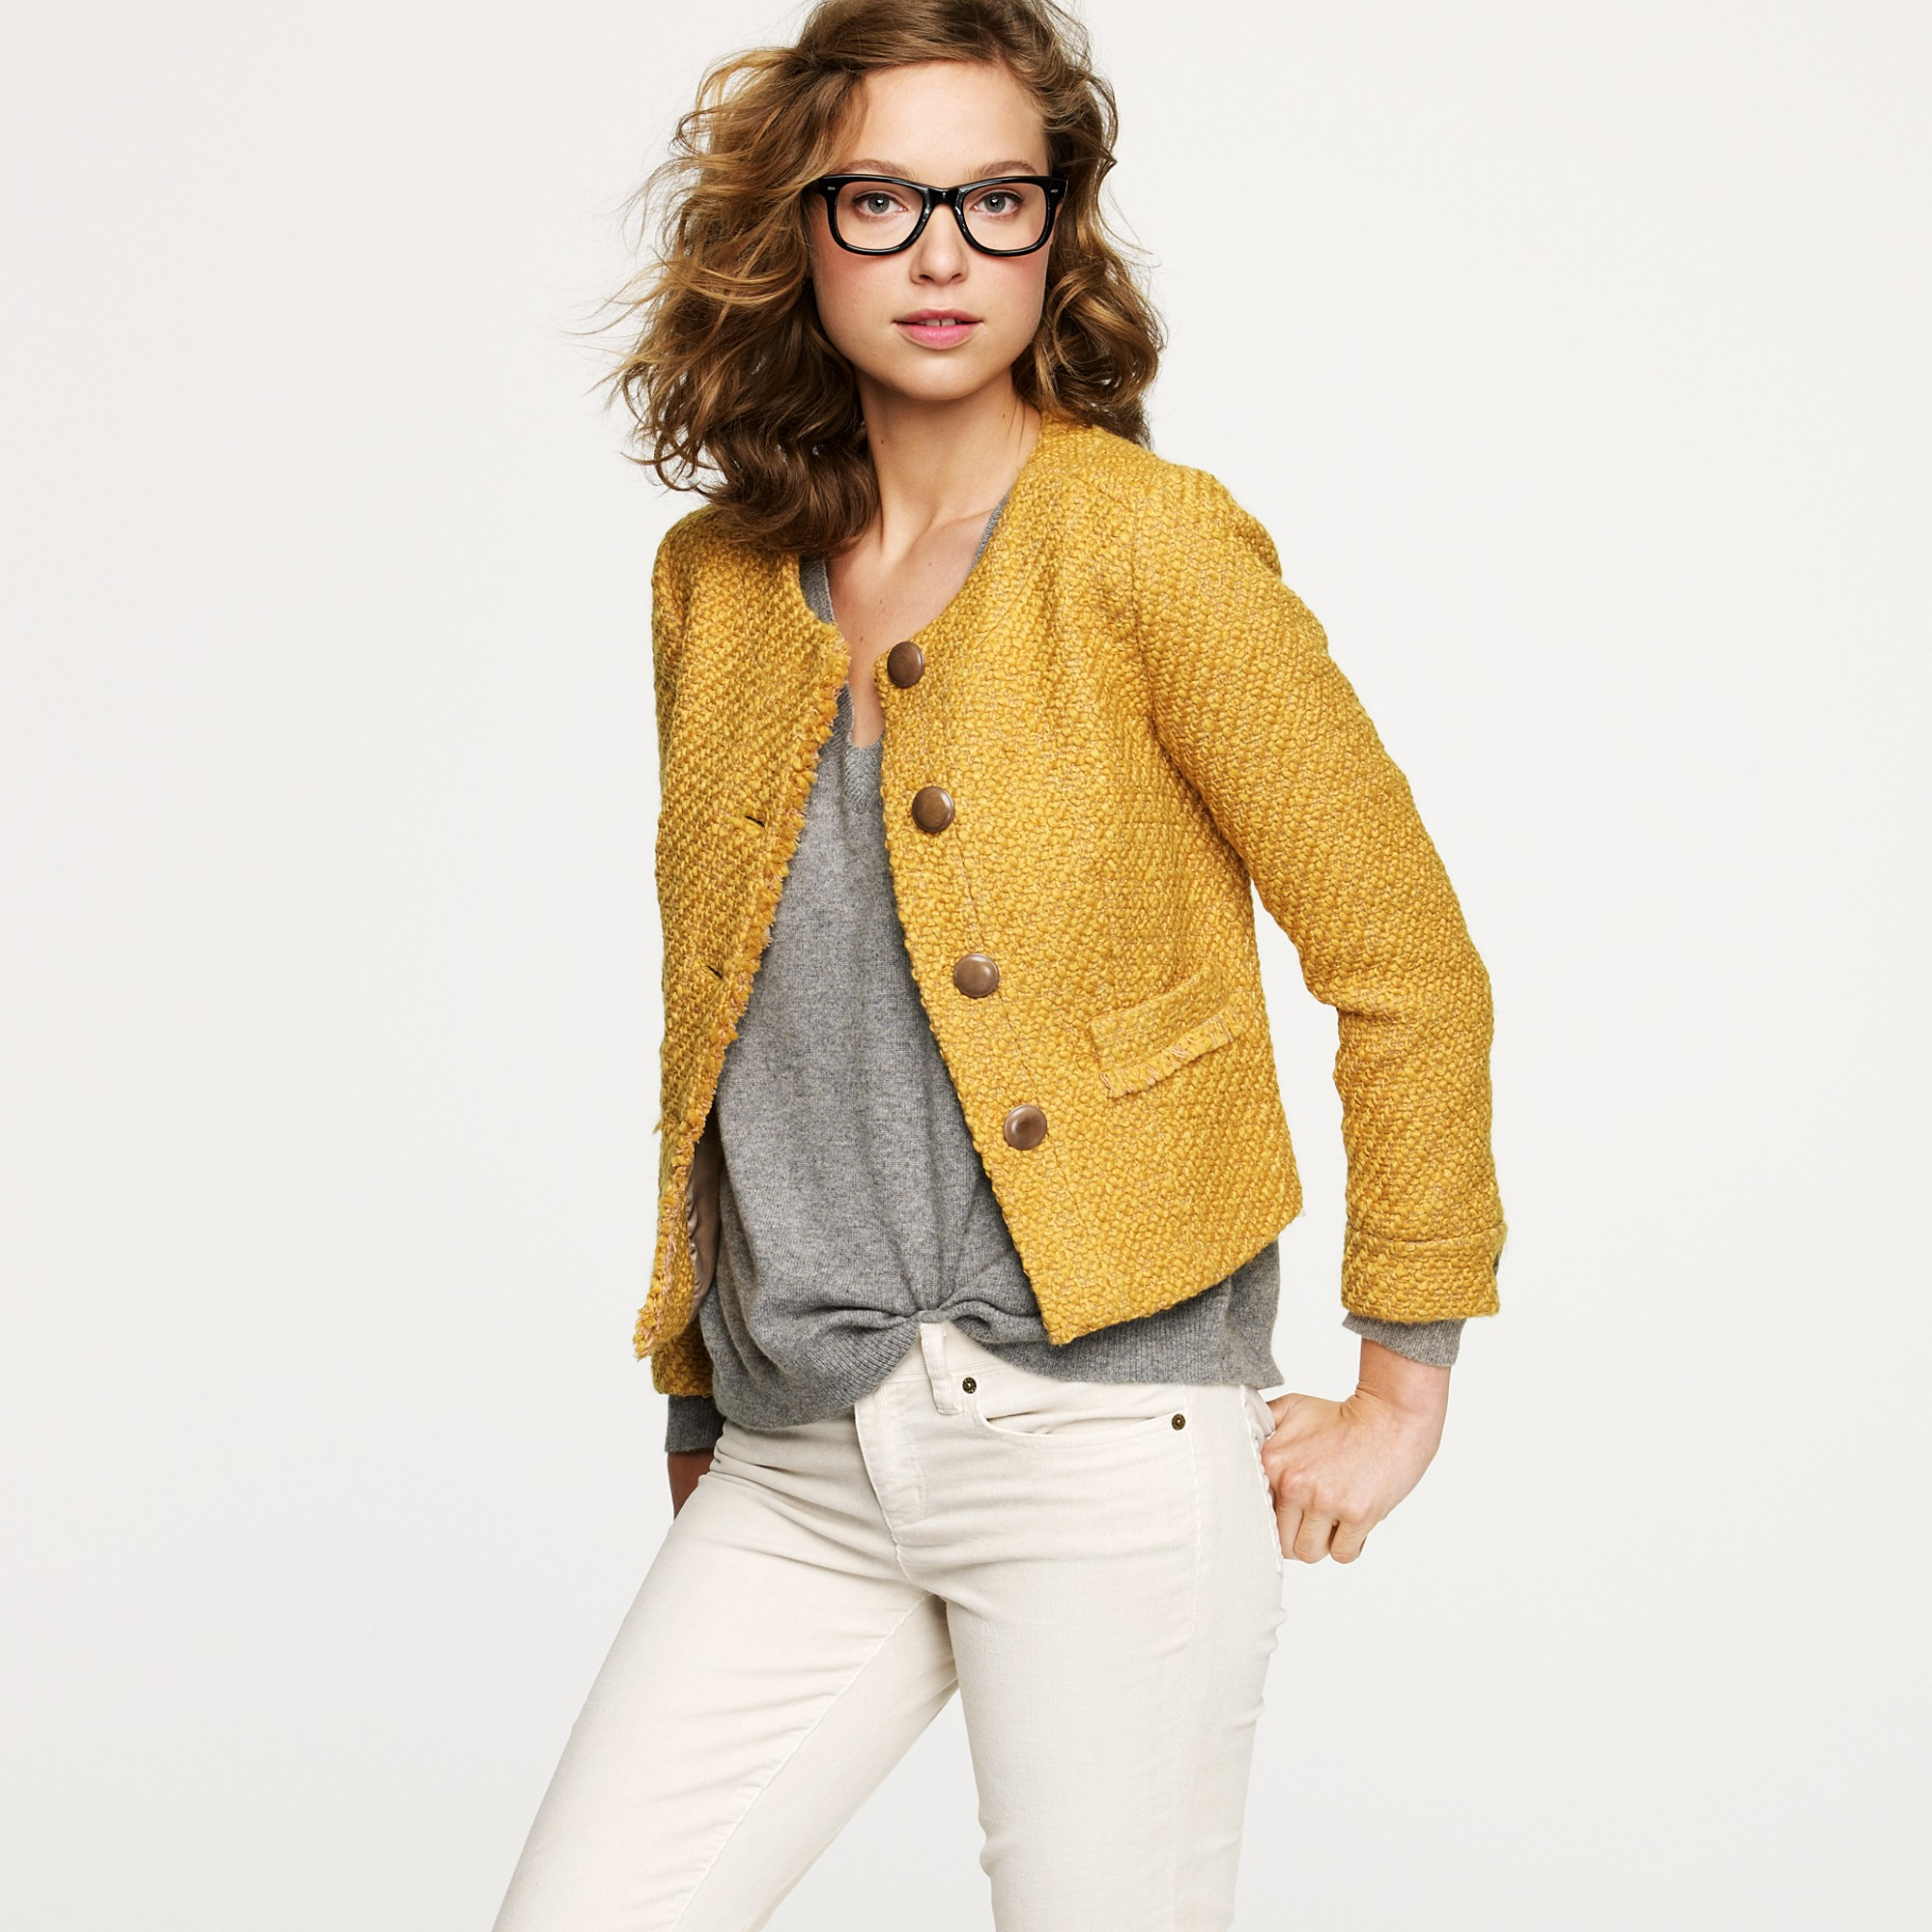 J.crew Vintage Tweed Jacket in Yellow | Lyst